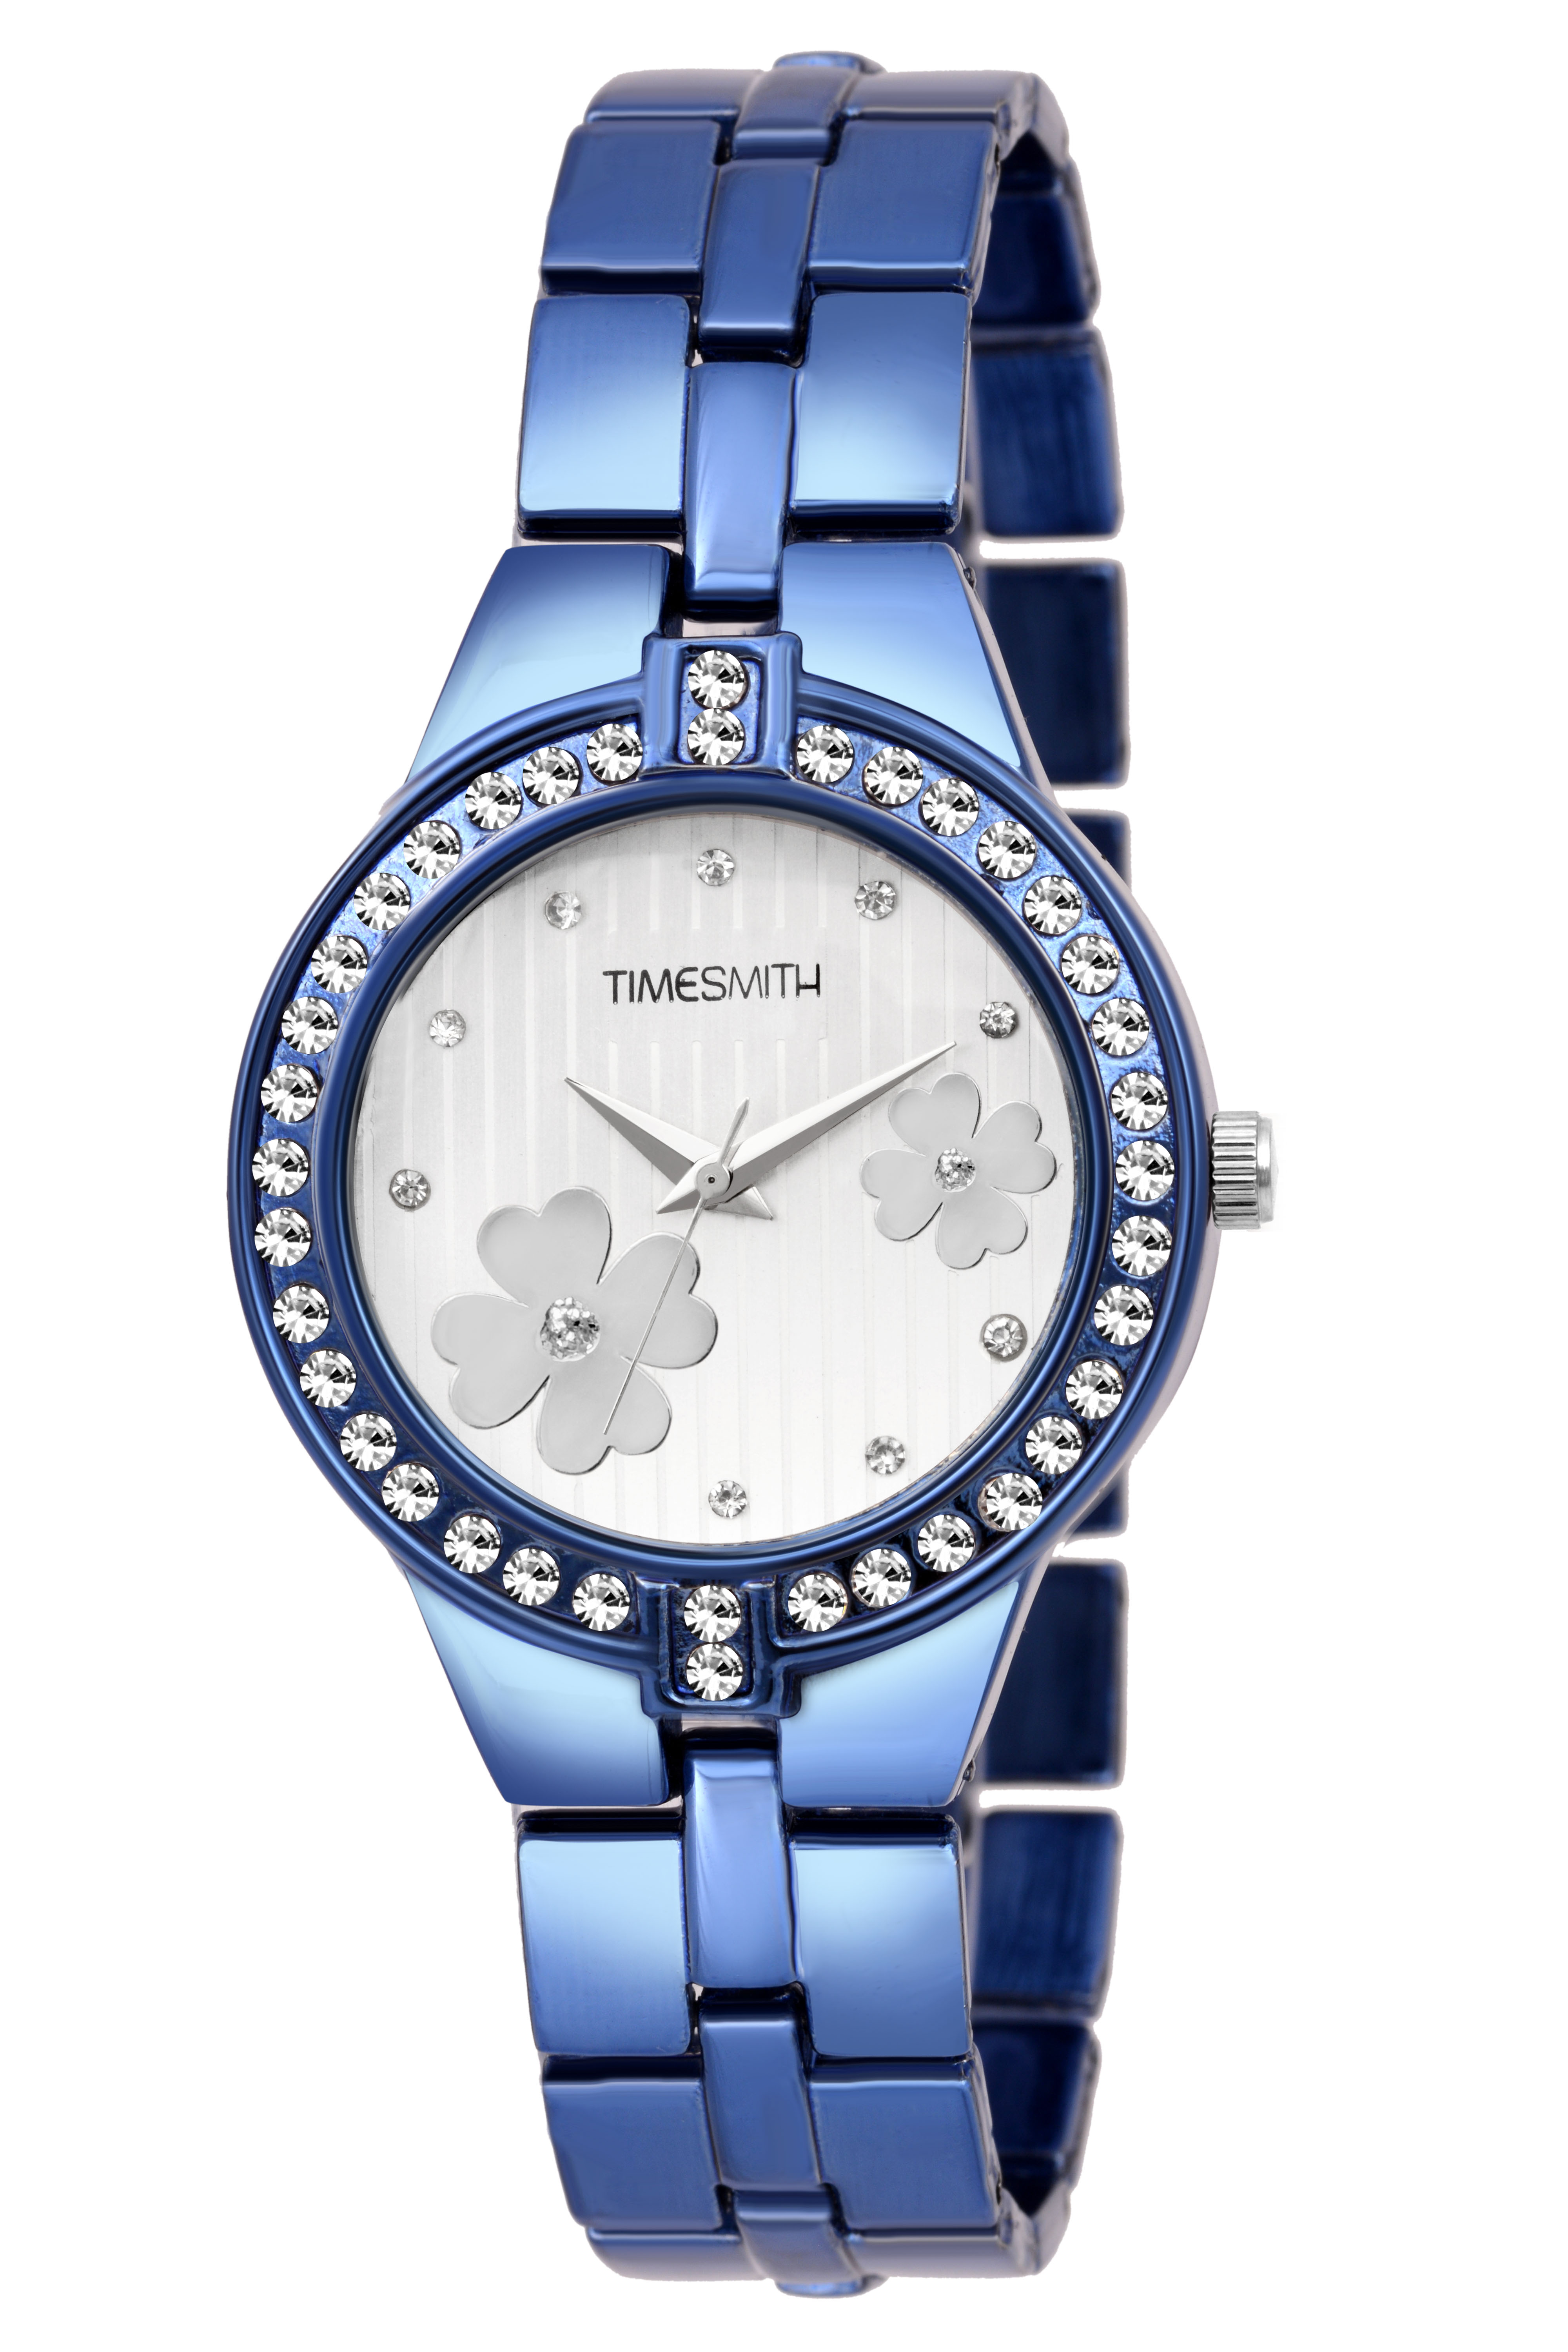 Timesmith   Timesmith White Dial Blue Stainless Steel Strap Branded Analog Watch for Women TSC-051